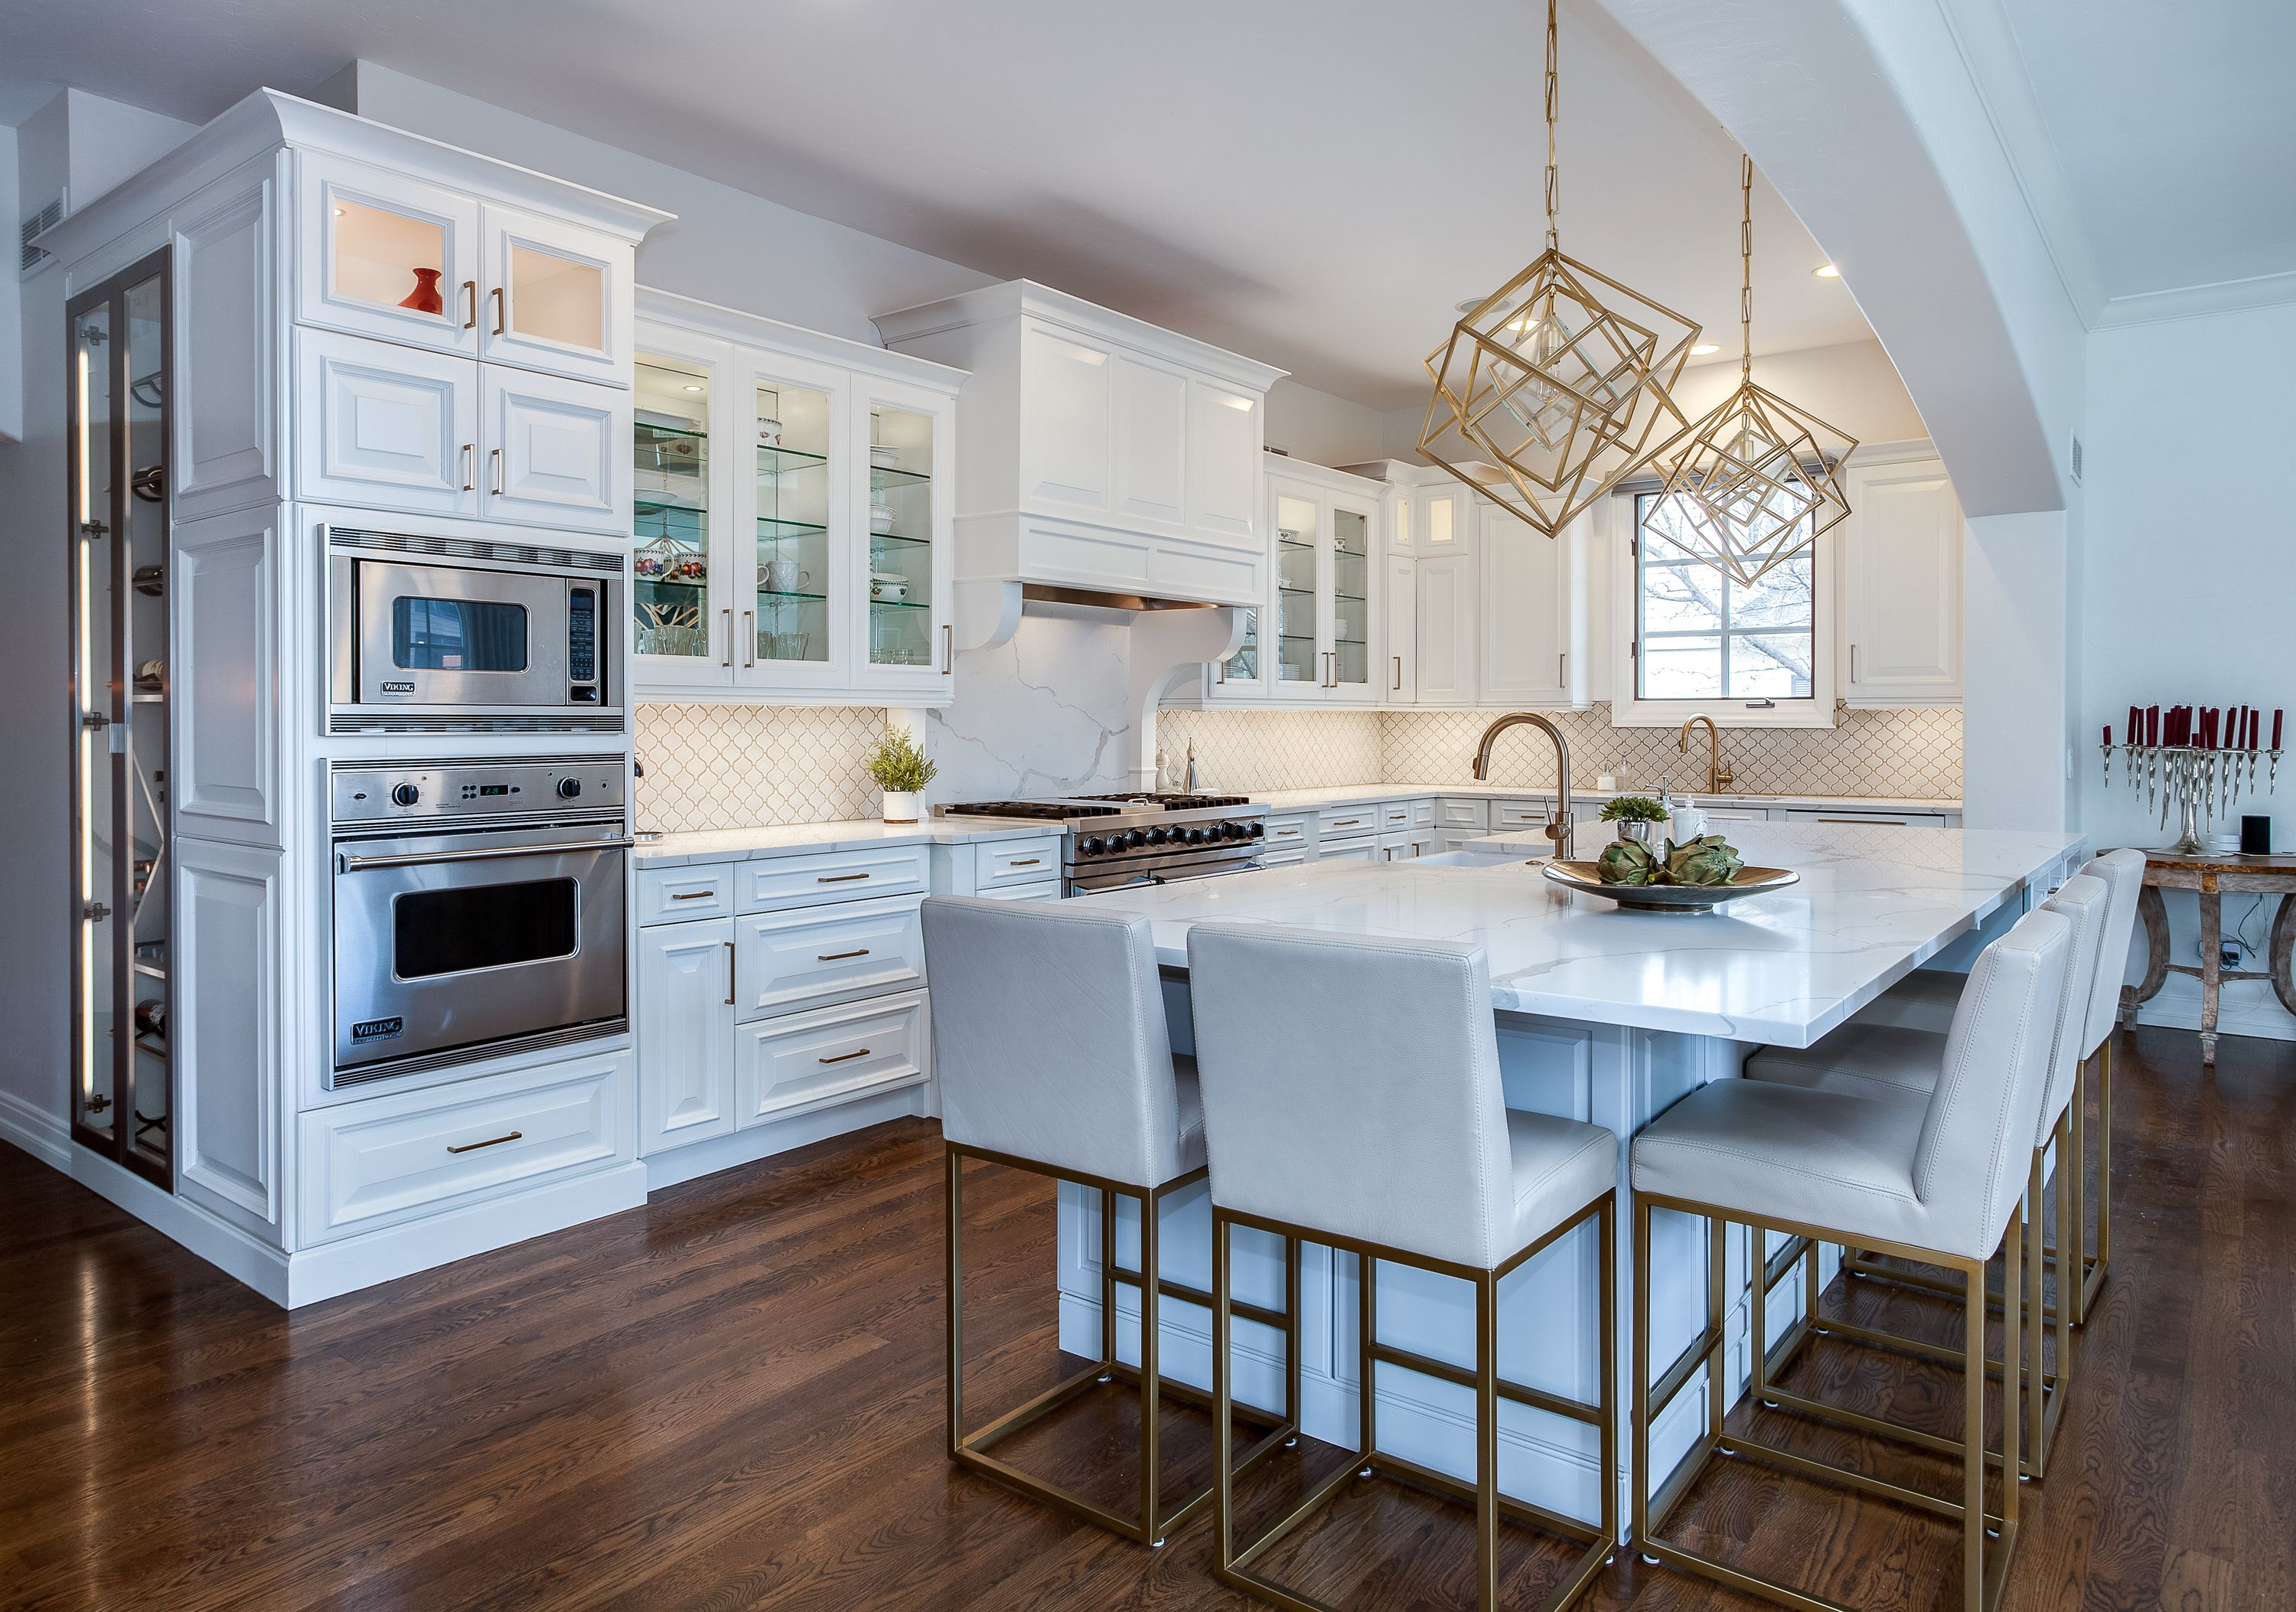 Cherry Hills Kitchen Remodel White Painted Cabinets Traditional Kitchen Remodel Oak Kitchen Remodel Kitchen Remodel